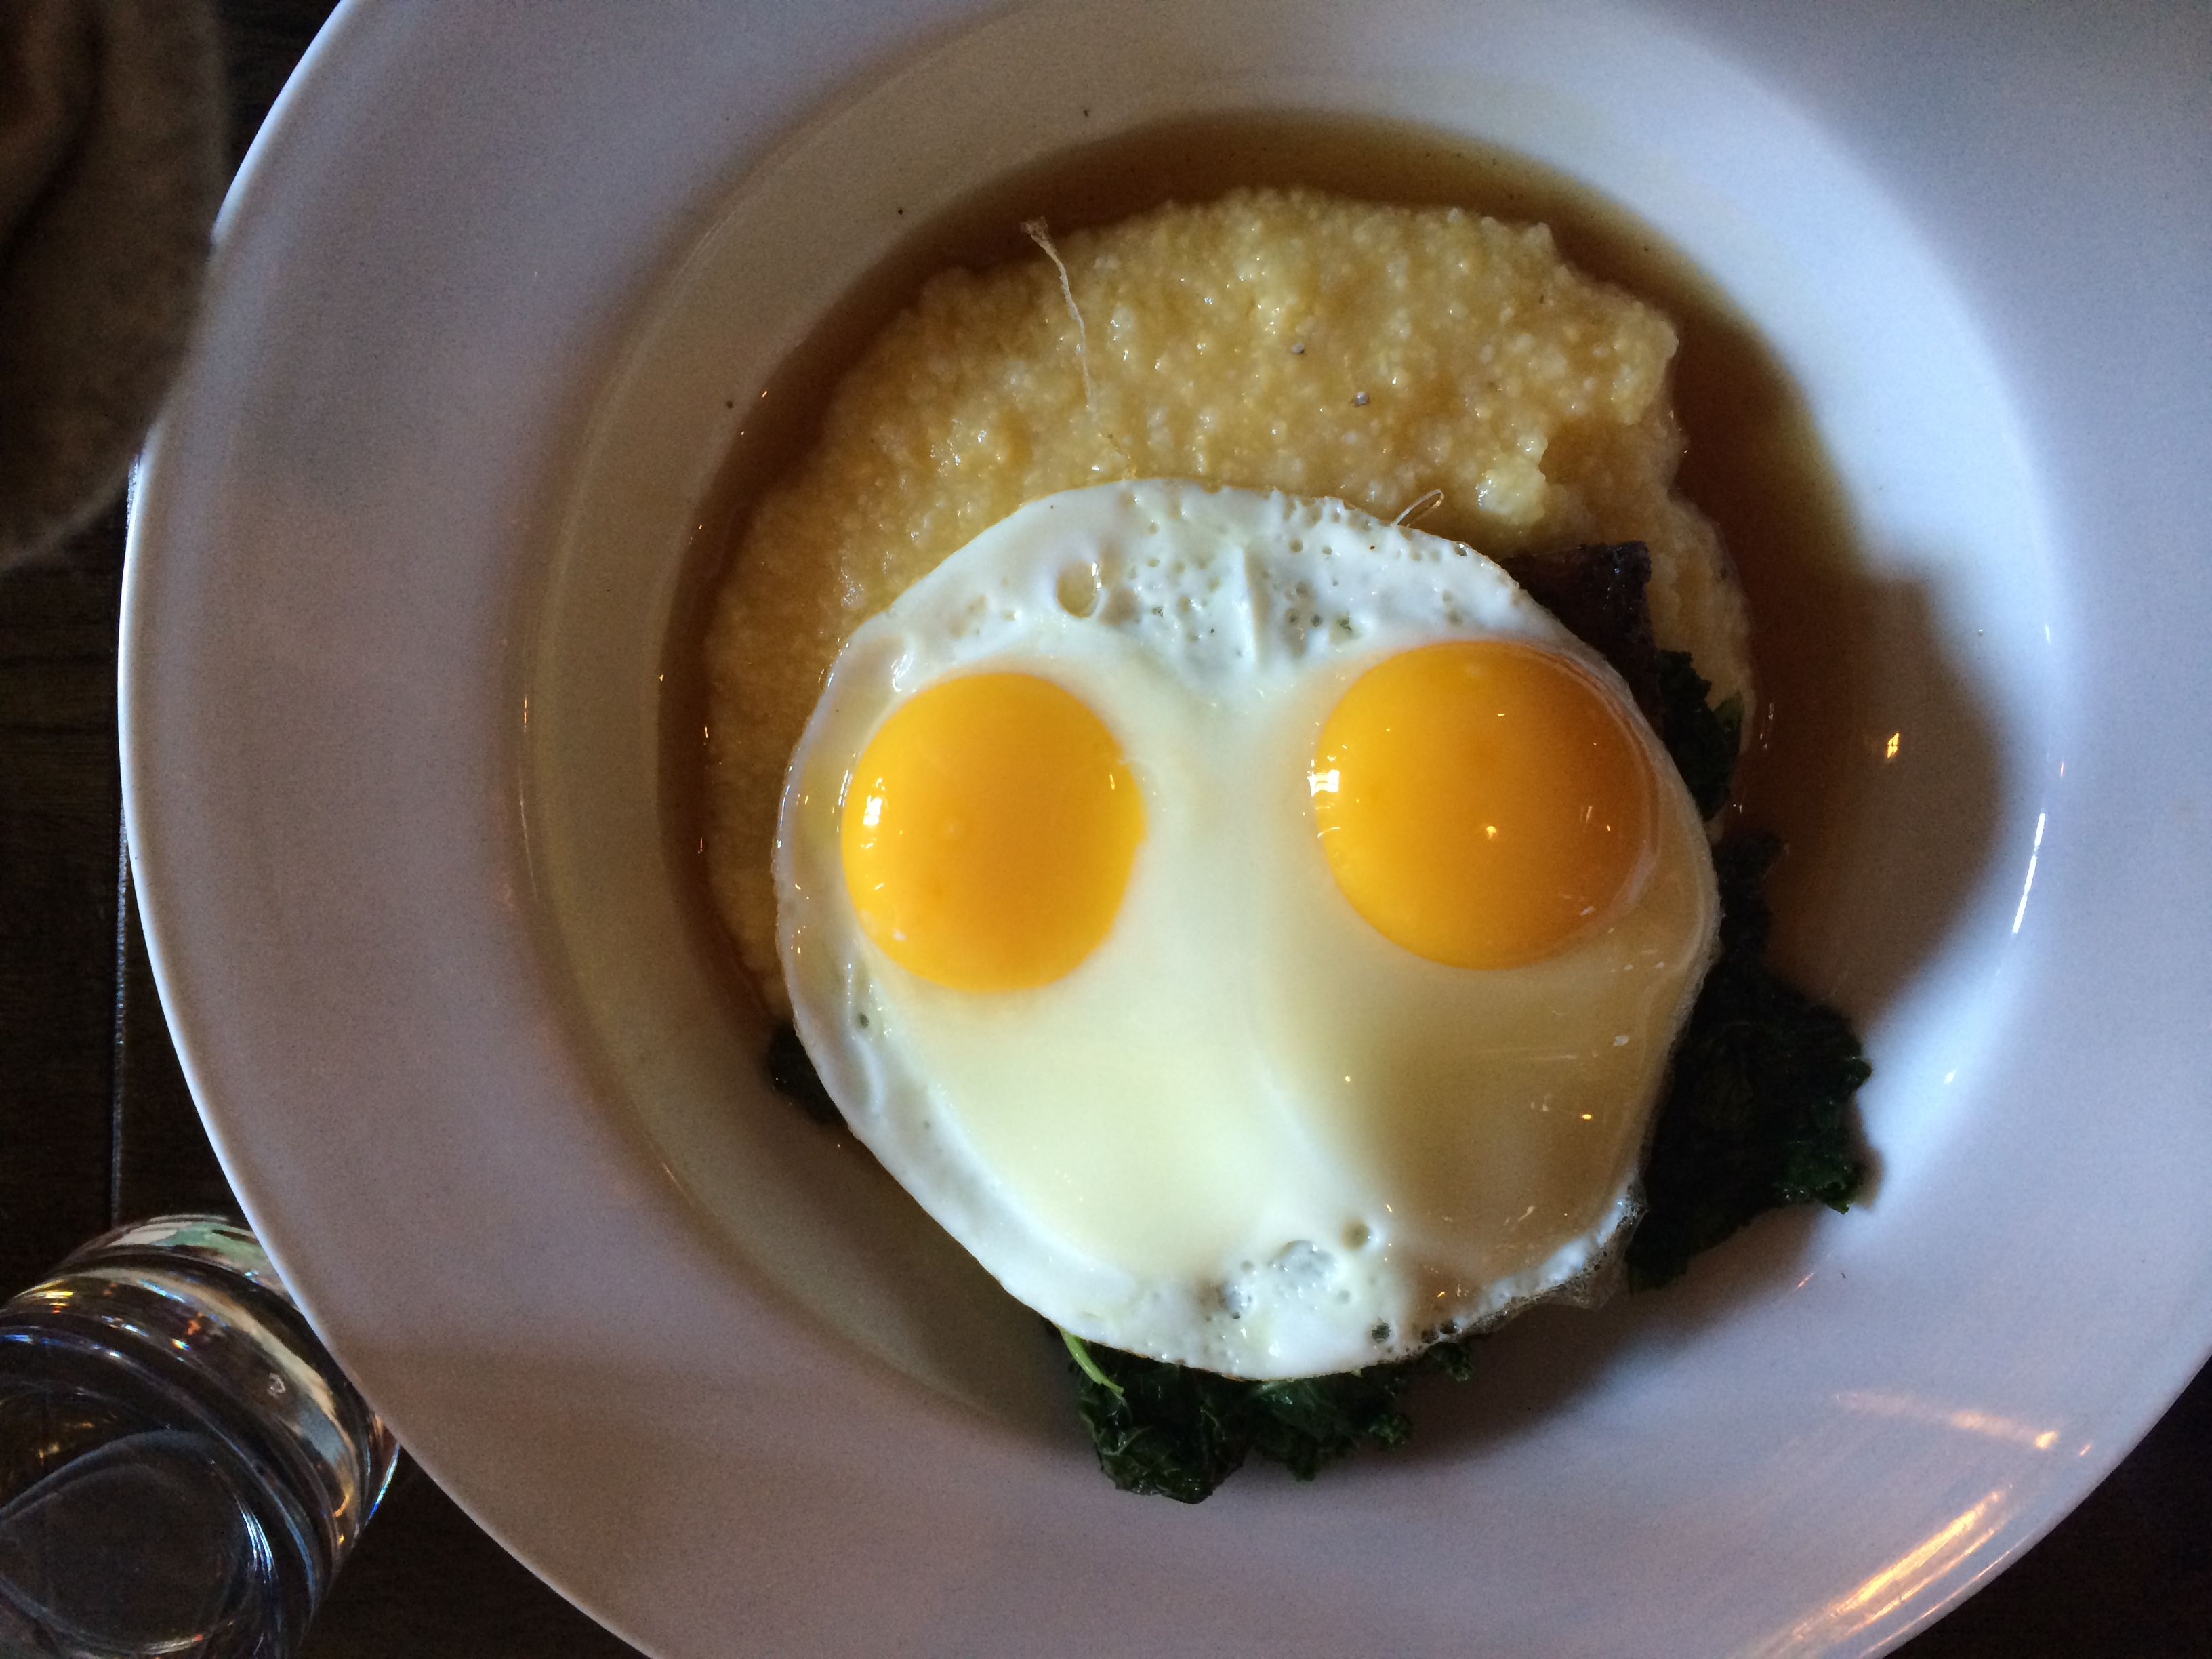 Pork belly and polenta with two eggs. (Photo: Lanna Nguyen/DC on Heels)